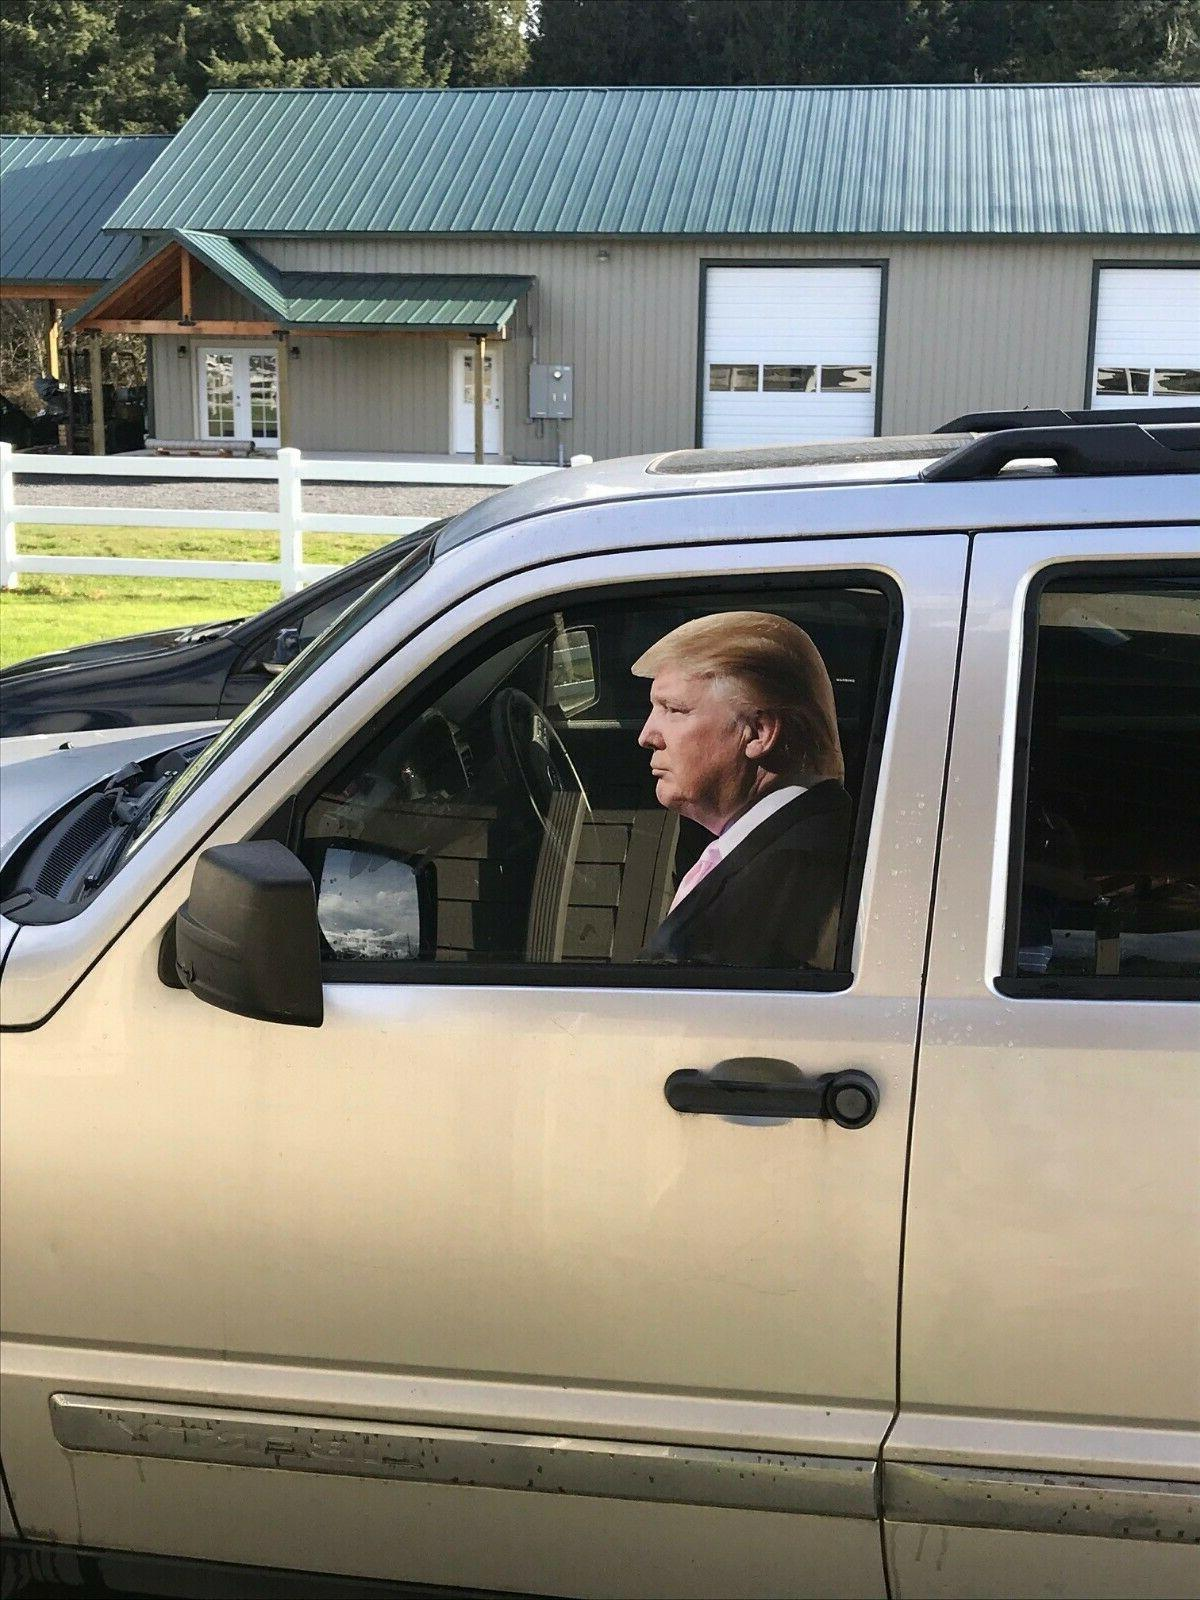 2020 Trump car sticker, life size, adhesive back, passenger